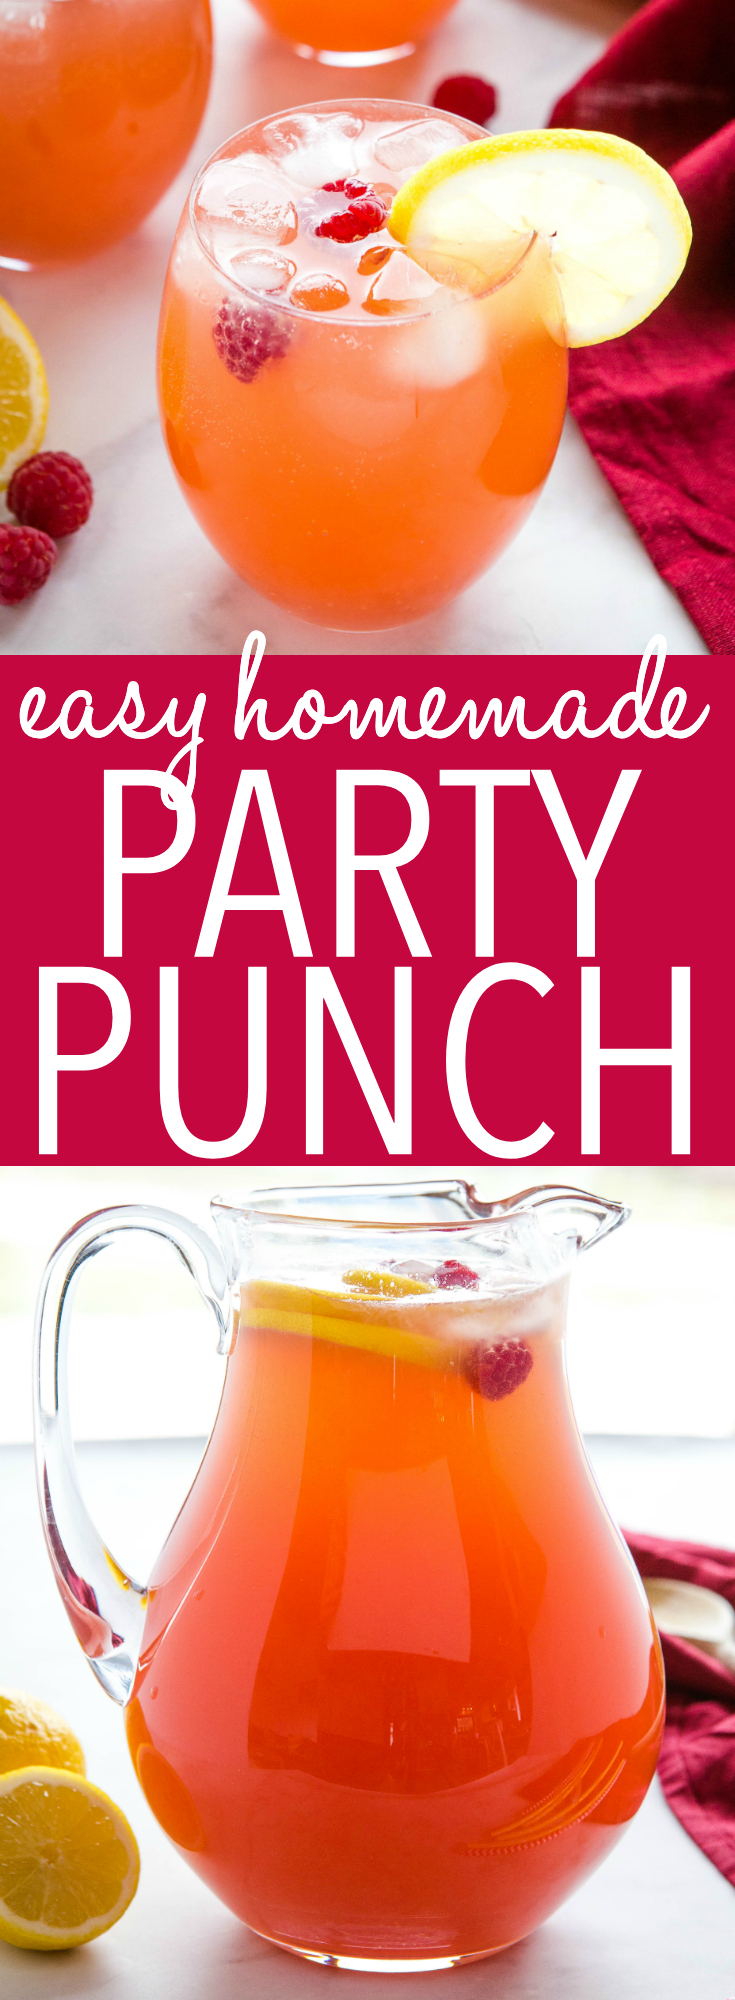 Make this Fruity Punch Recipe for a quick and easy non-alcoholic punch that's great for parties and holidays! You only need 4 ingredients! Recipe from thebusybaker.ca! #party #punch #holiday #fruit #cranberry #lemon #lime #easter #christmas #birthday via @busybakerblog